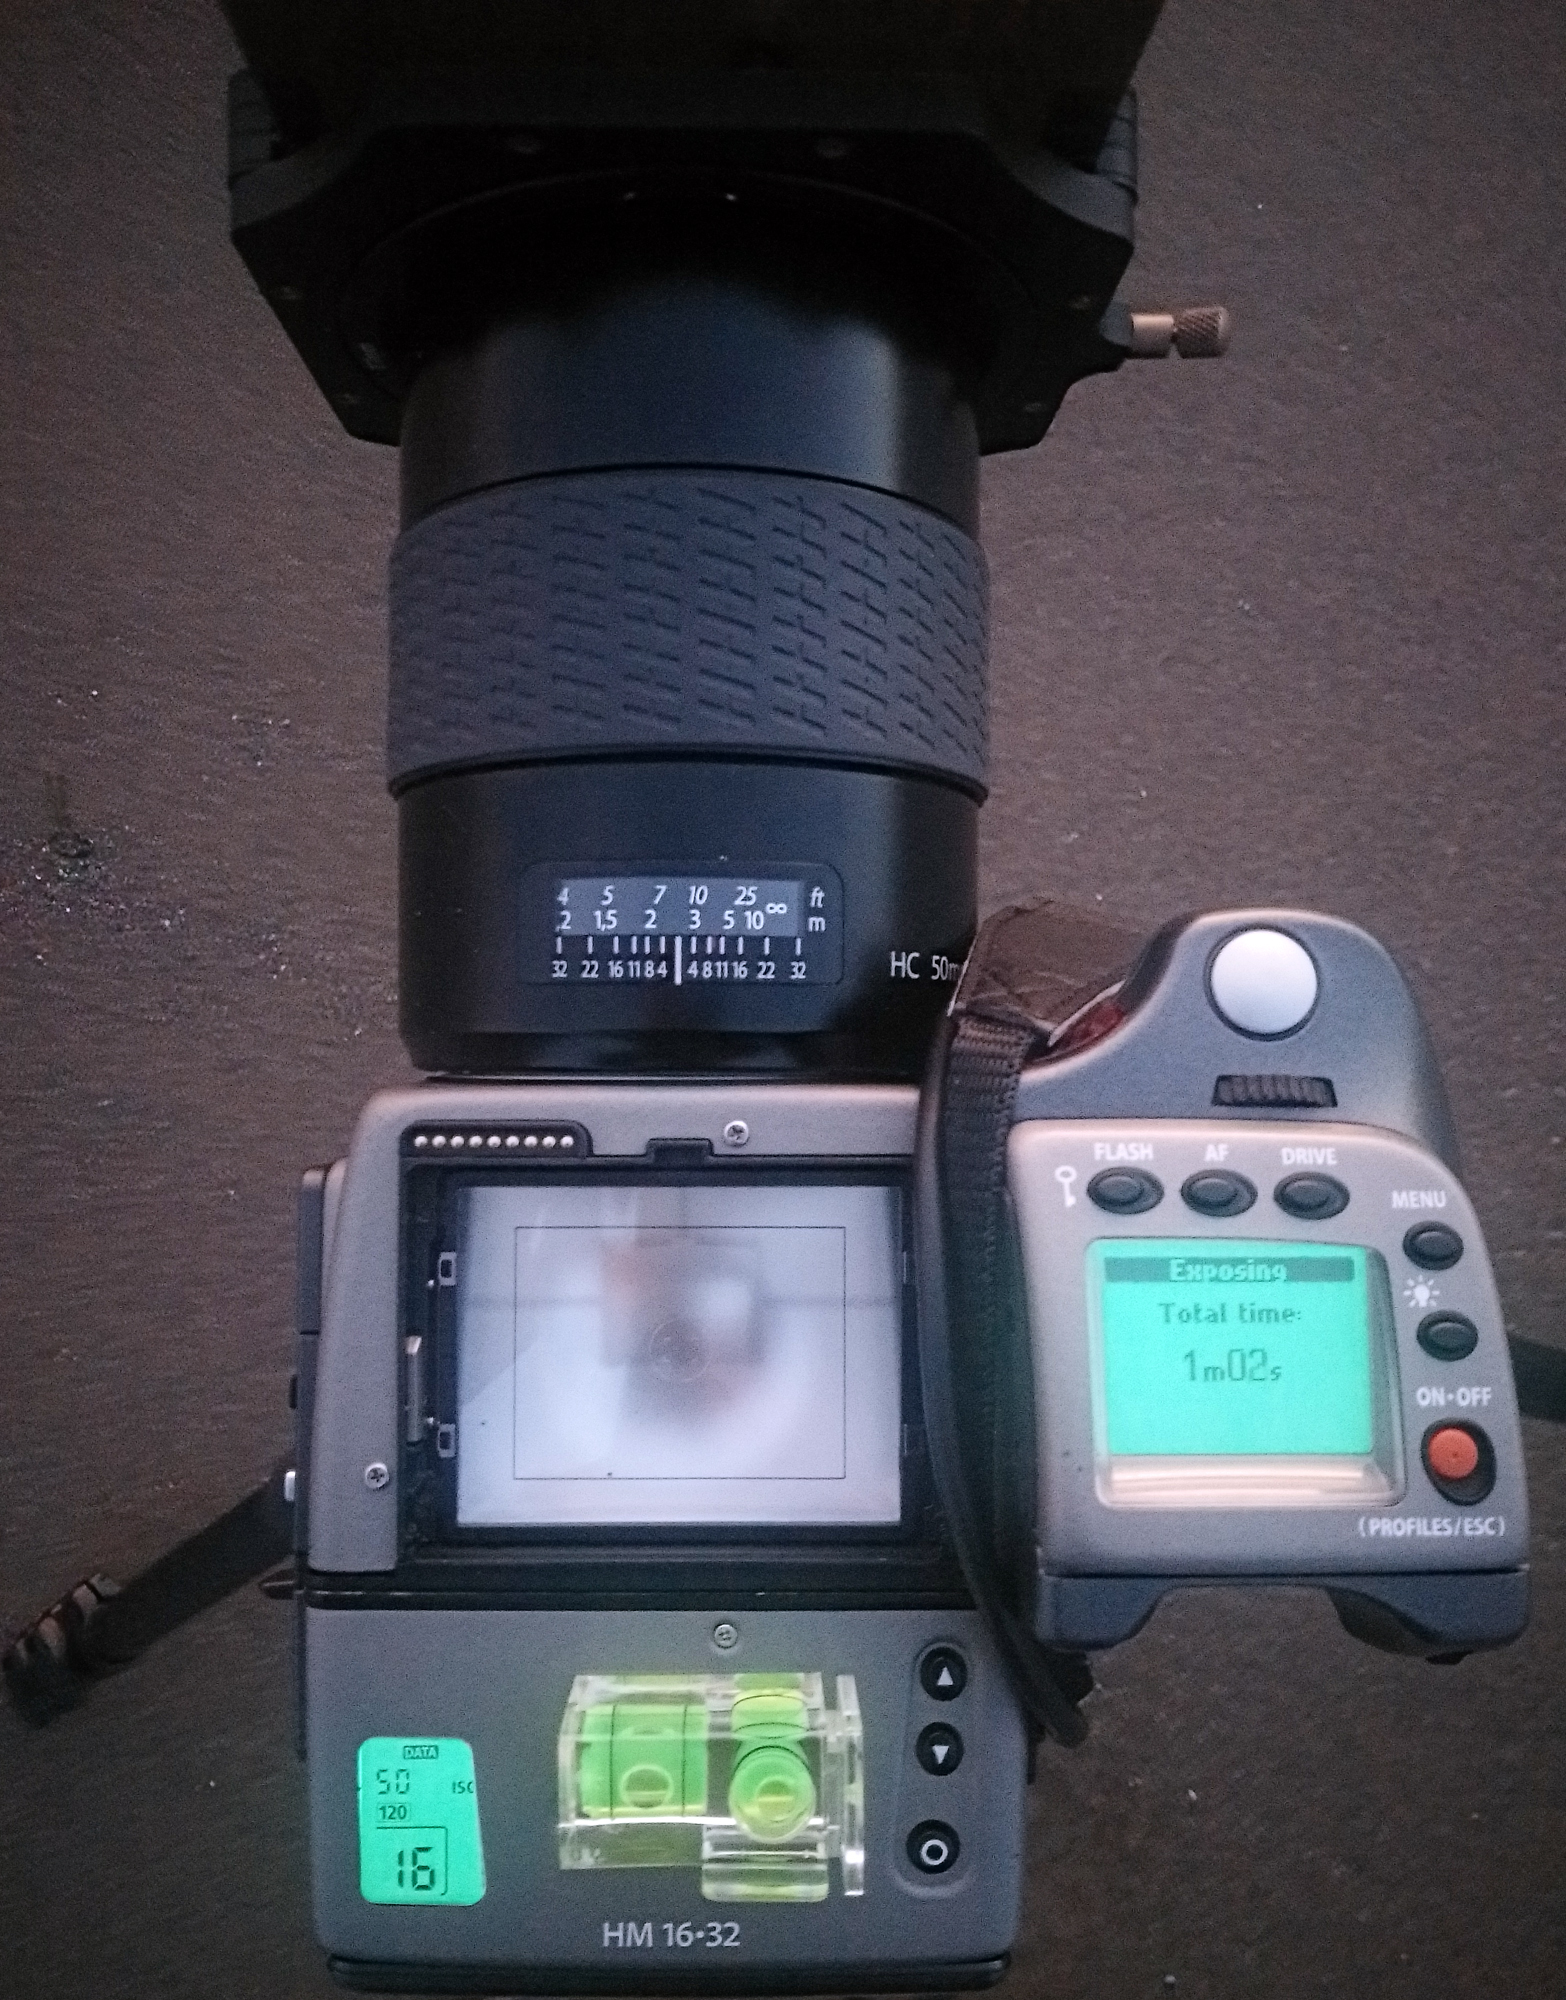 The H1 without prism during an expsoure with the main LCD illuminated showing the time elapsed. The film back LCD illuminates as well.